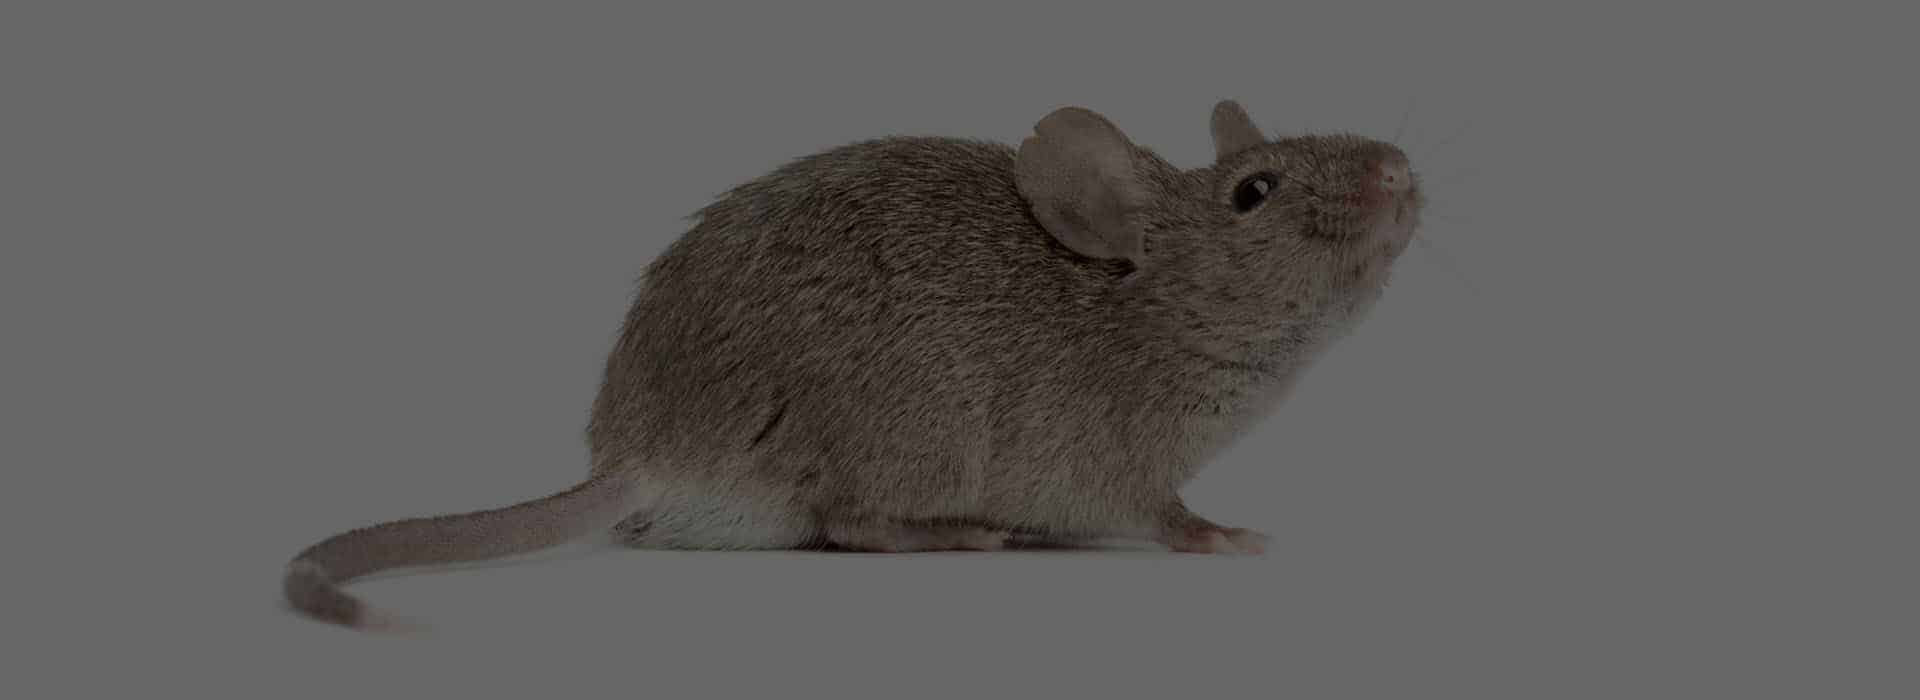 Mice-Mouse-Pest-Control-Lowton